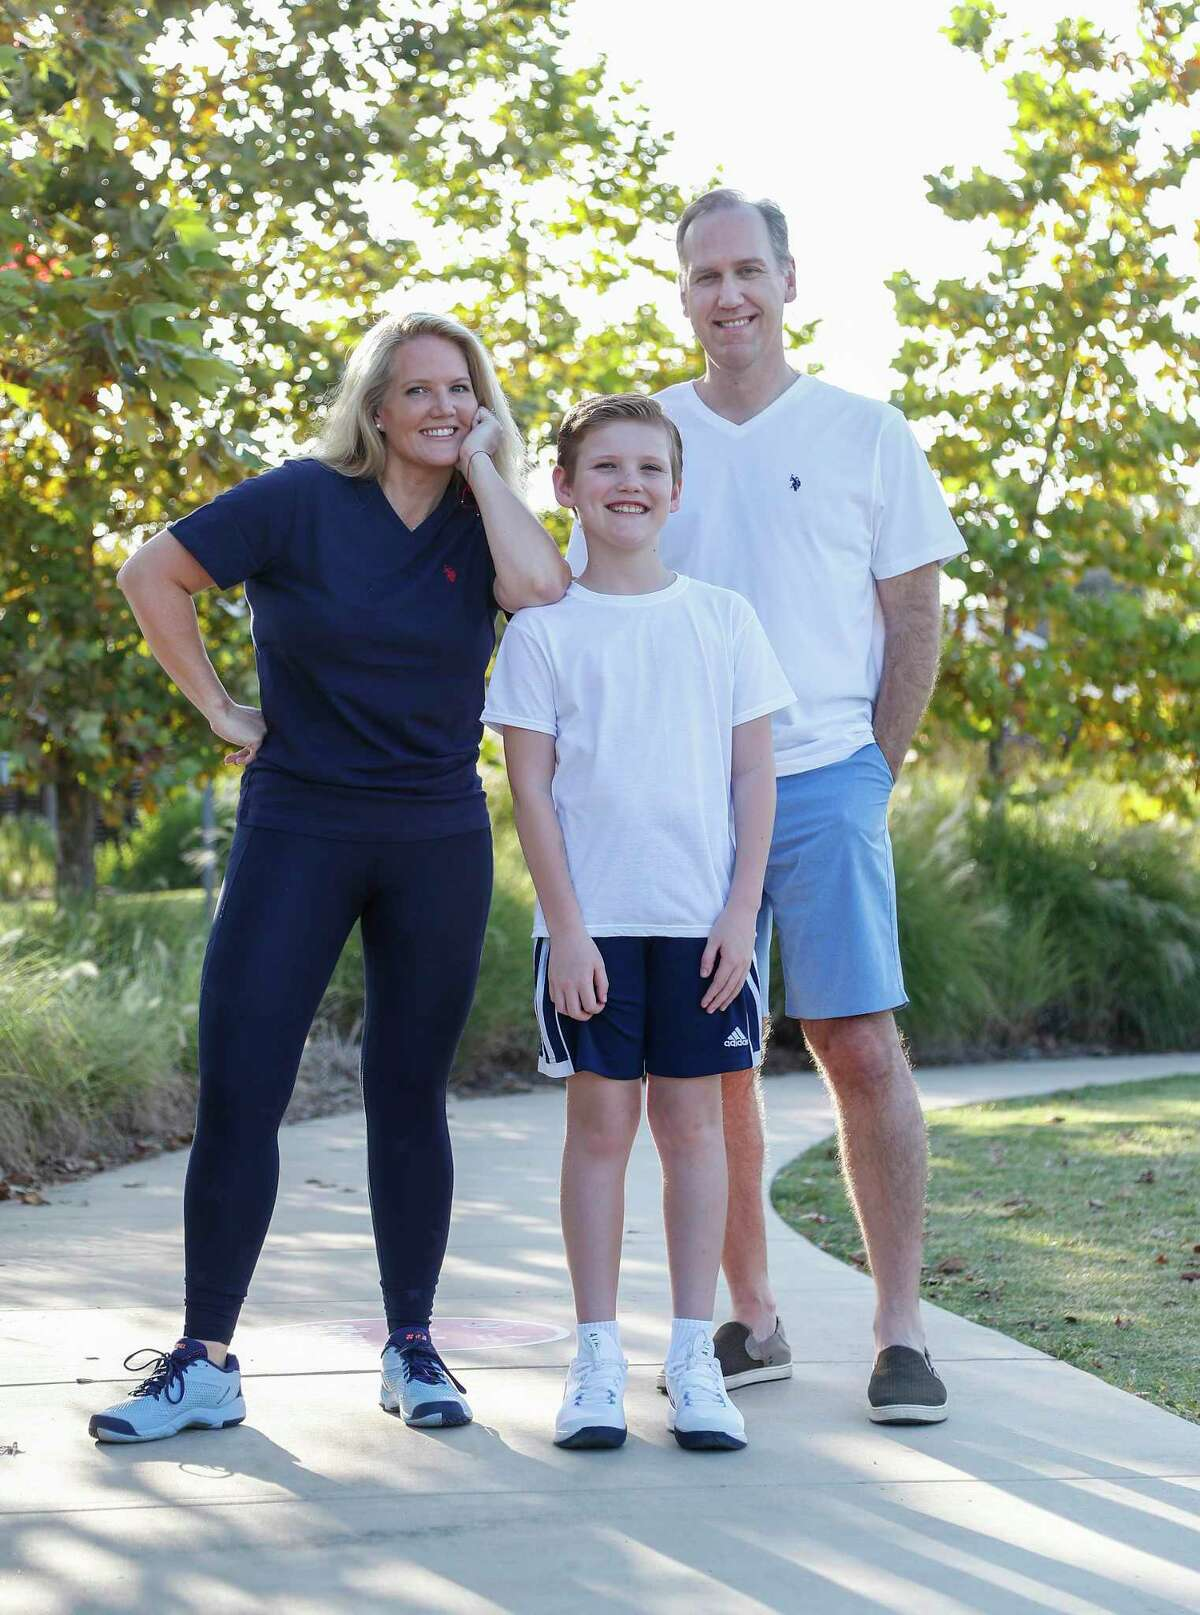 Brigitte Radulovich, husband Mark and son Nicholas have all adopted a more active lifestyle.